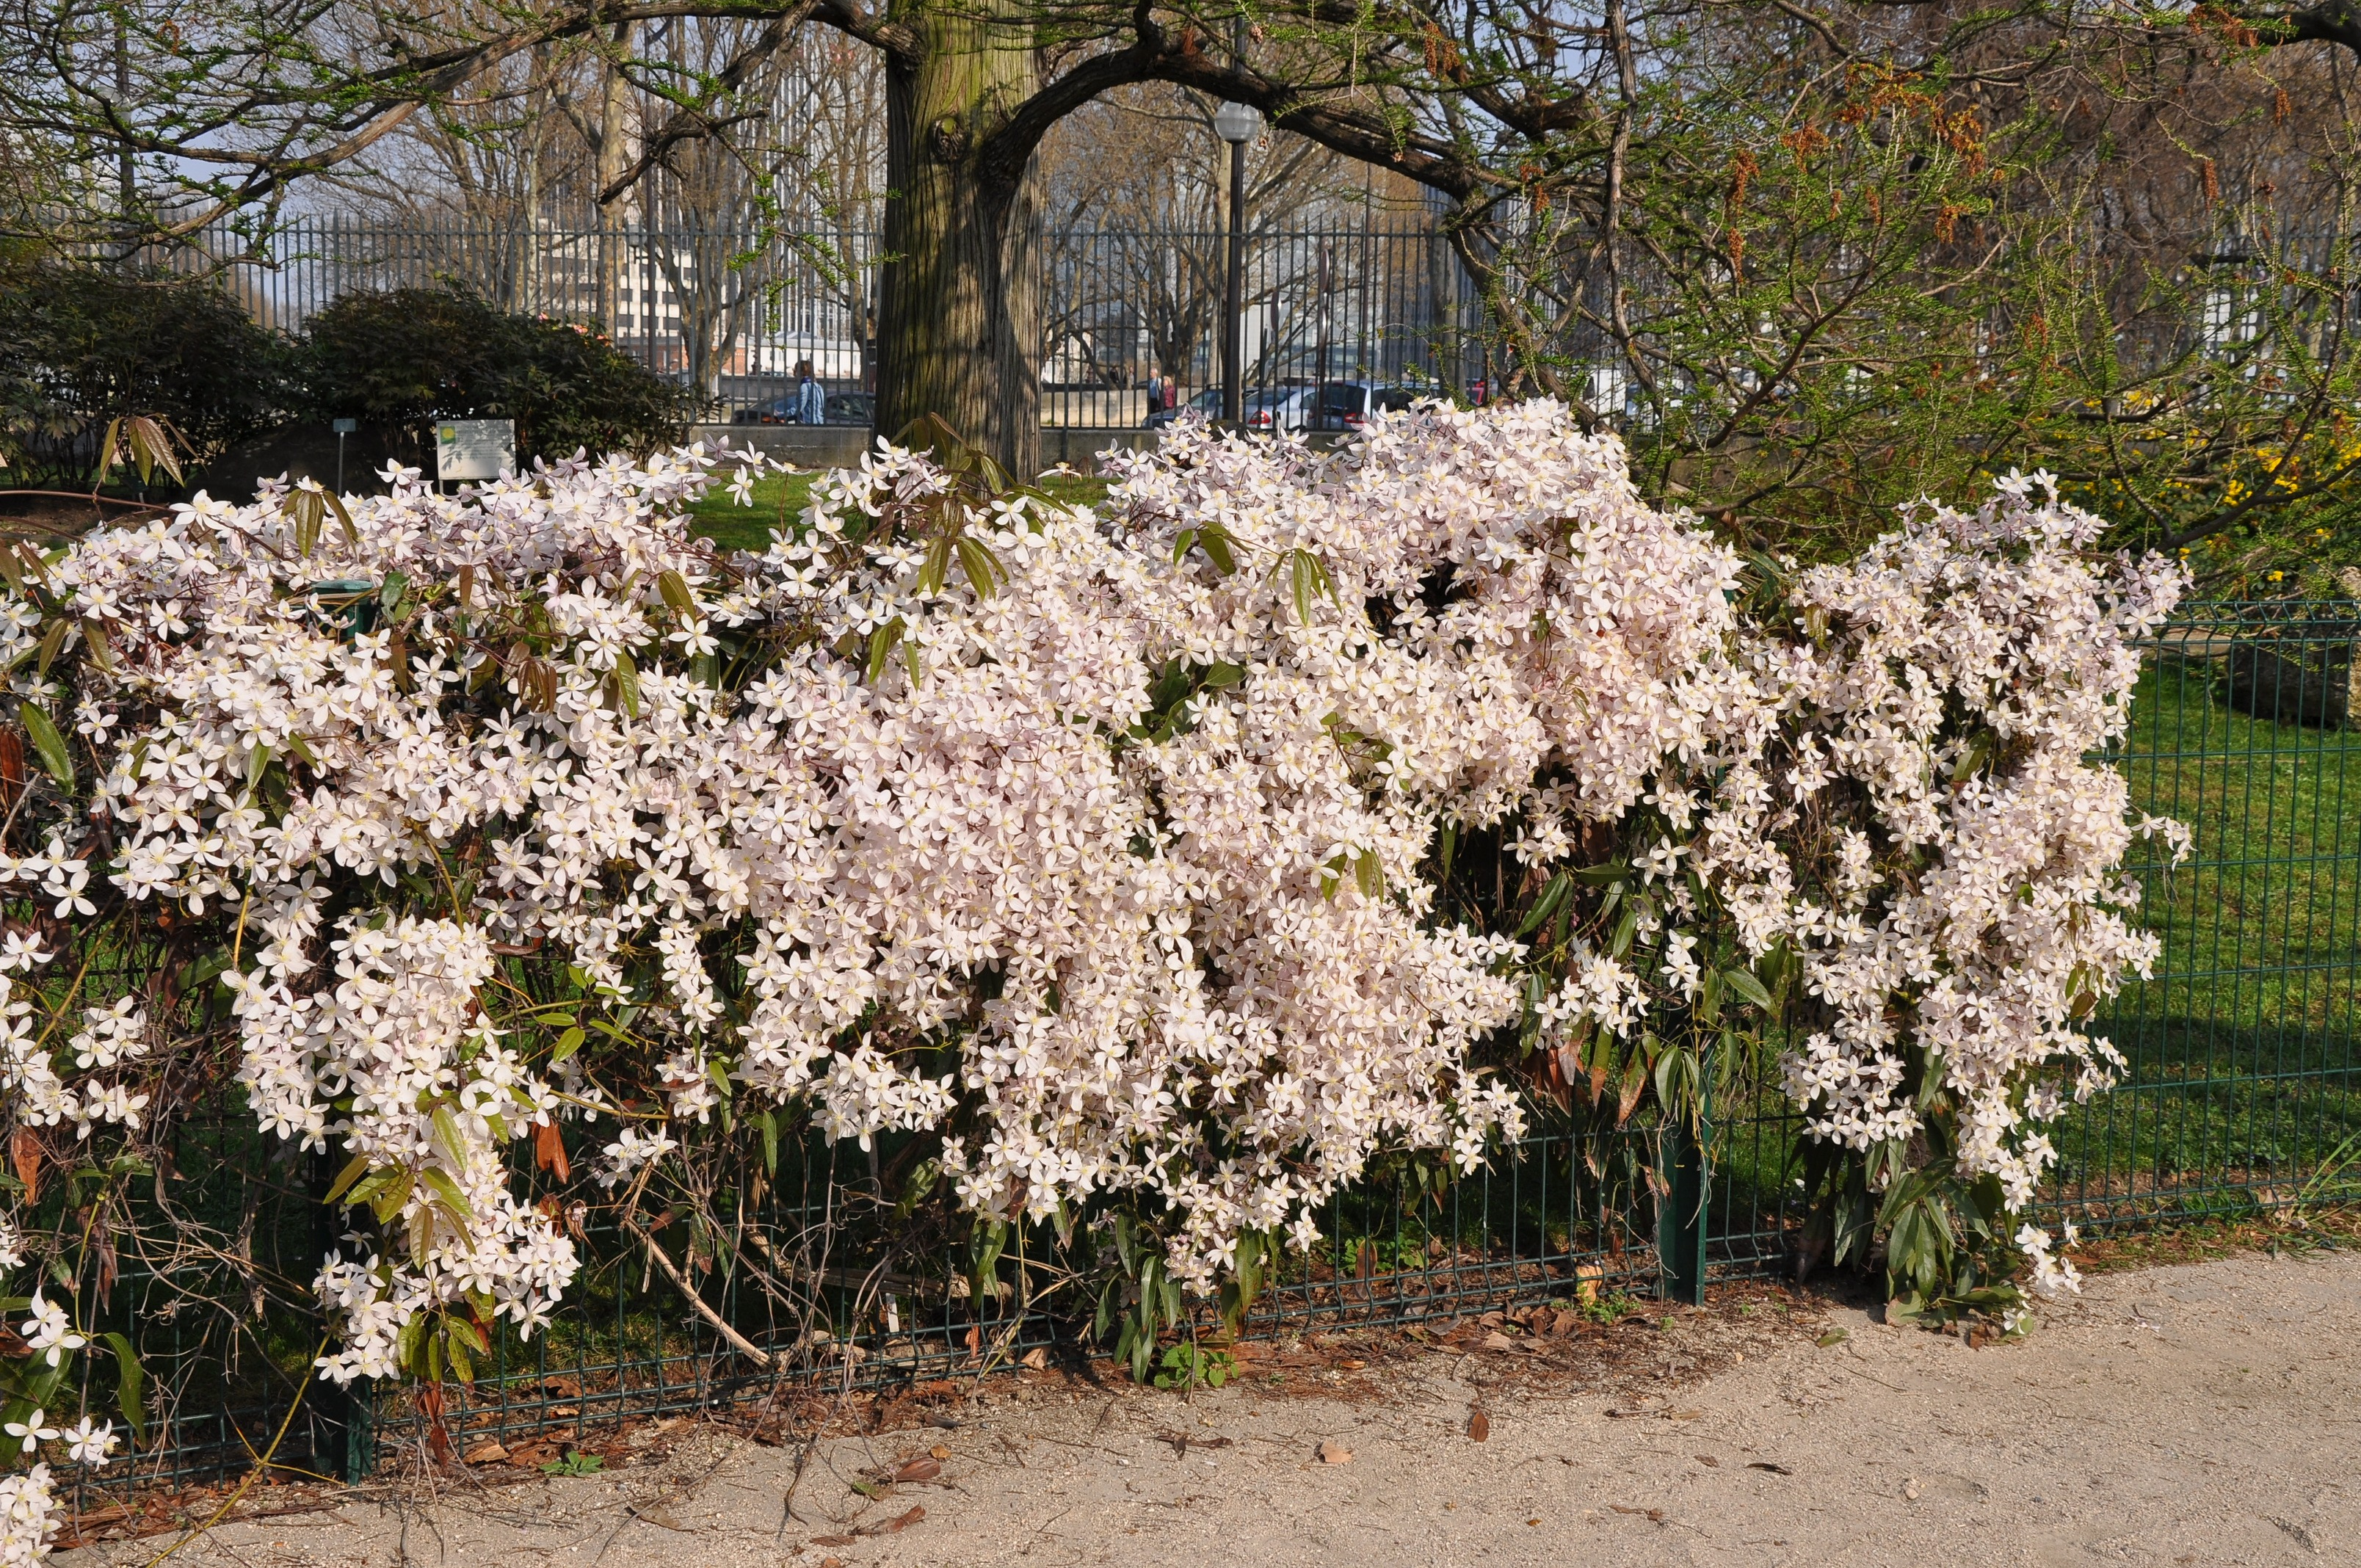 file clematis 39 apple blossom 39 in the jardin des plantes de paris 003 jpg wikimedia commons. Black Bedroom Furniture Sets. Home Design Ideas